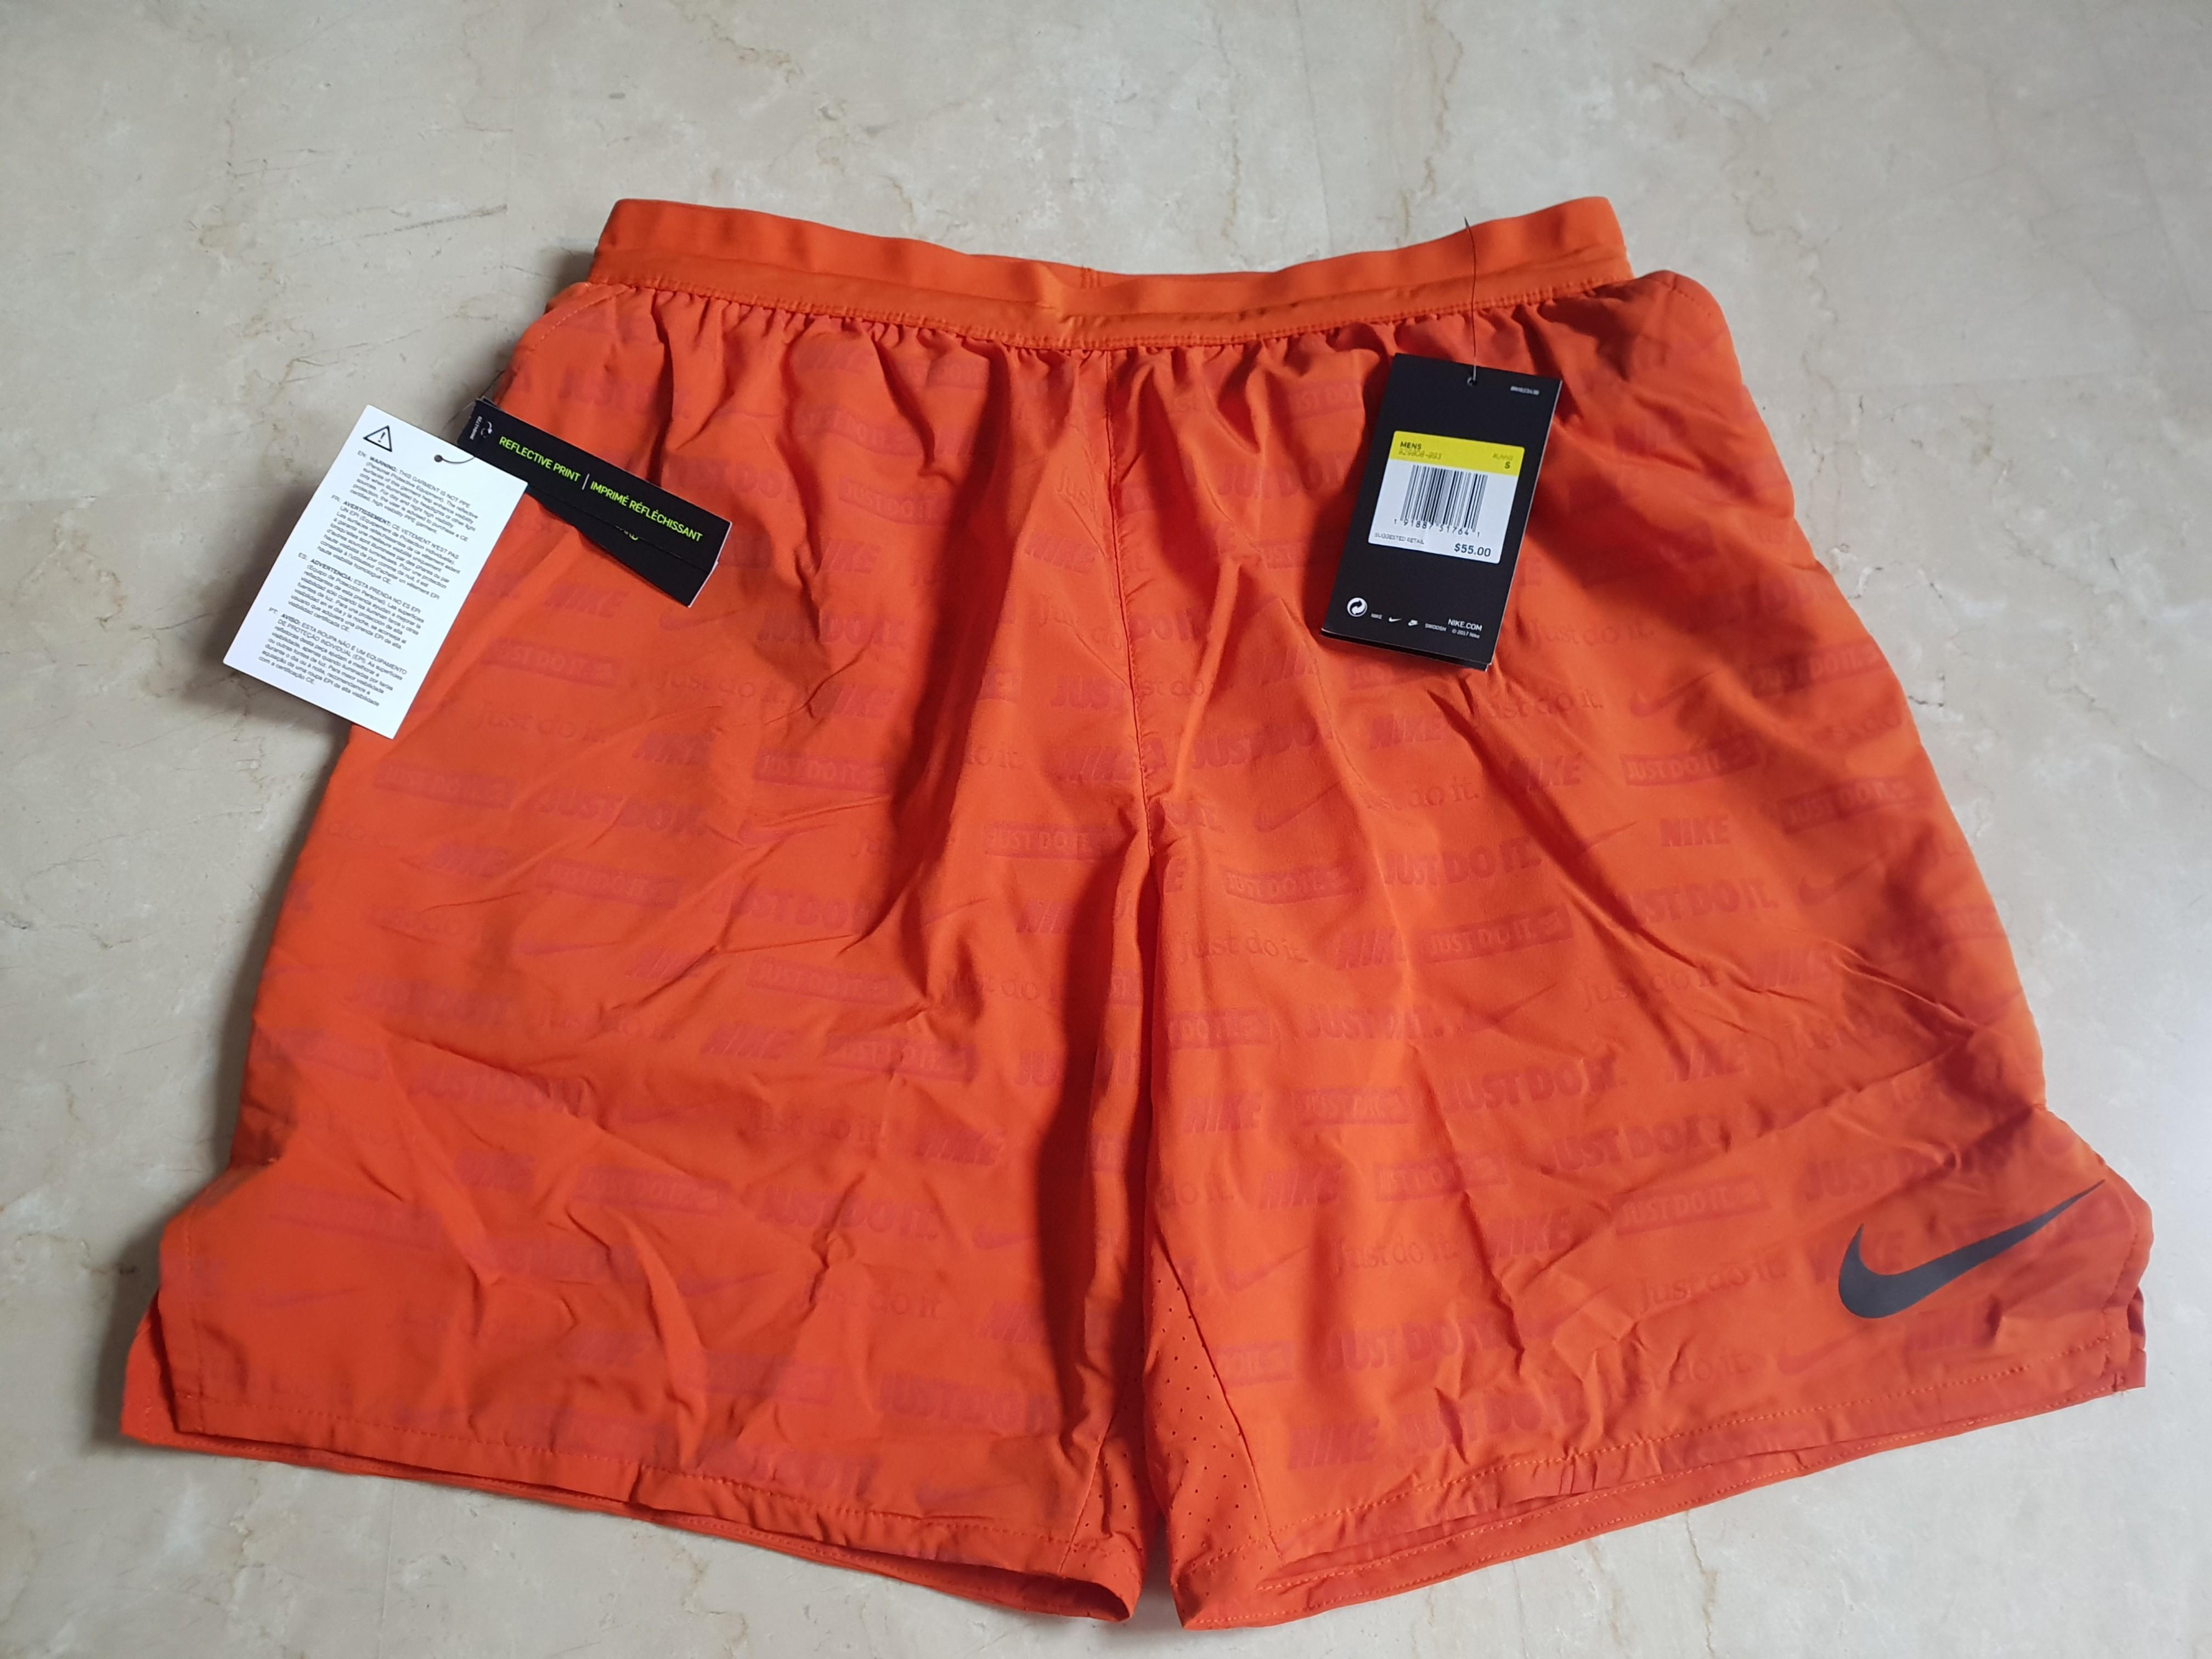 ca474058a3 Nike Men's Running Shorts, Sports, Sports Apparel on Carousell